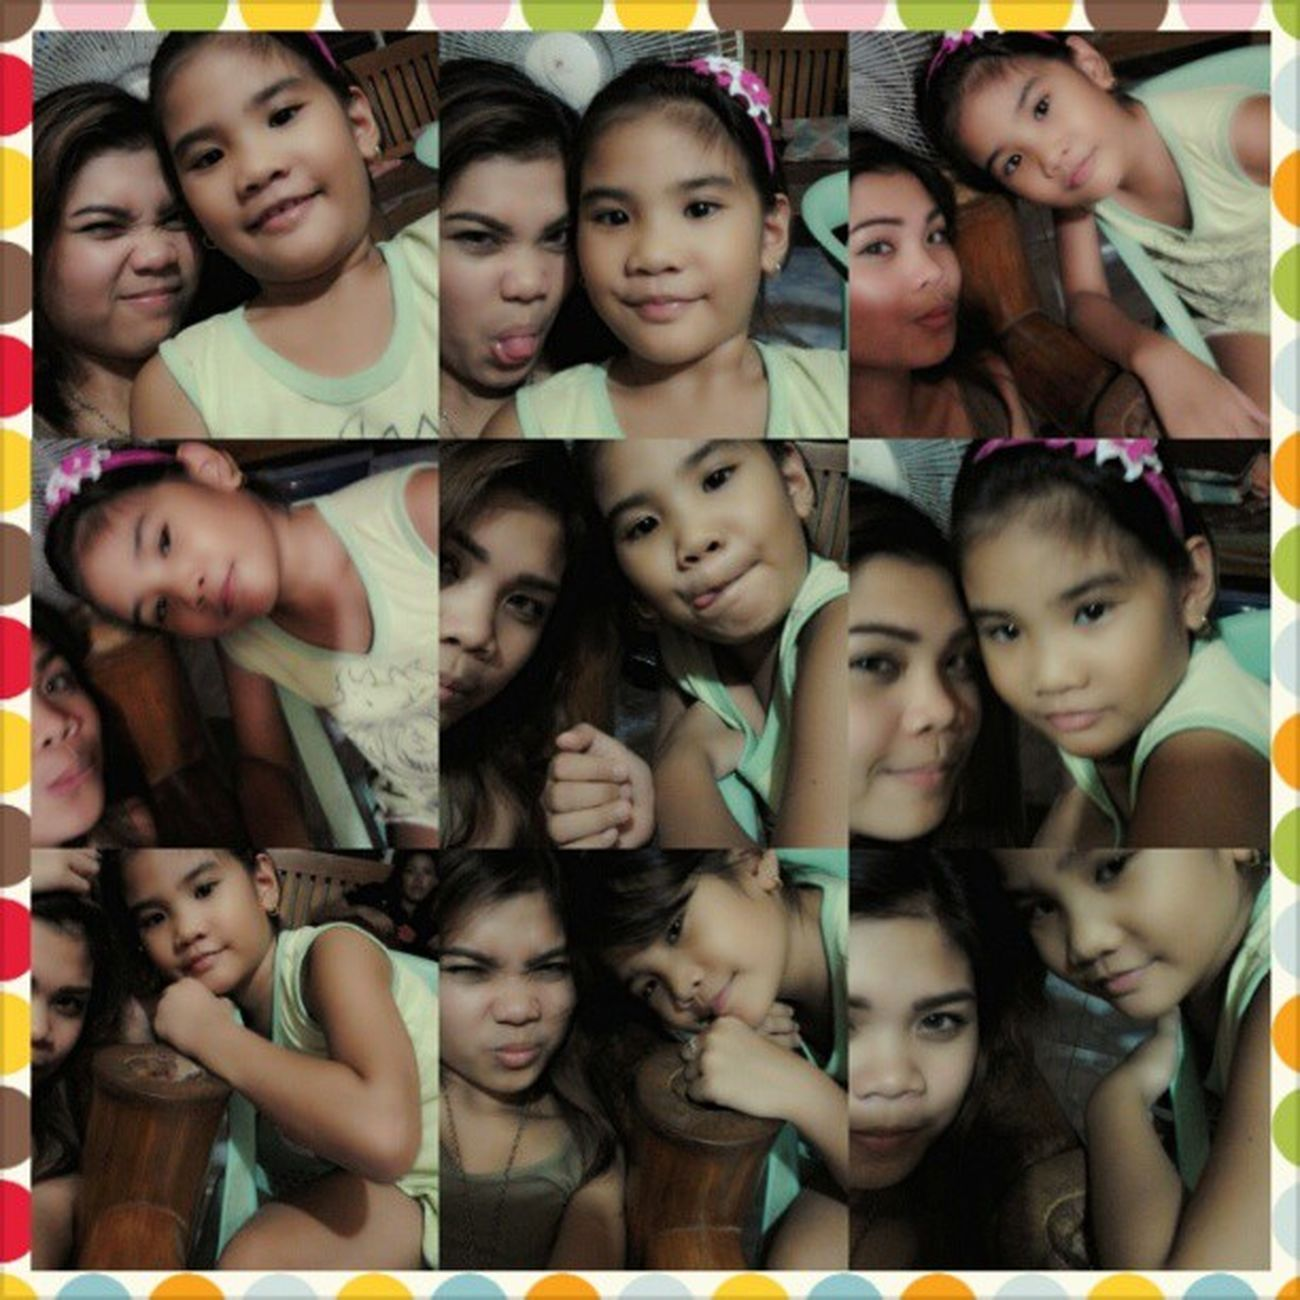 My sissy & me. Vanity moments. Vanity Vain Homesweethome Thursday Familybonding Sisterbonding Igers Instagram Igshot Igmoments Igcapture Instacapture Instapose Followme Followback